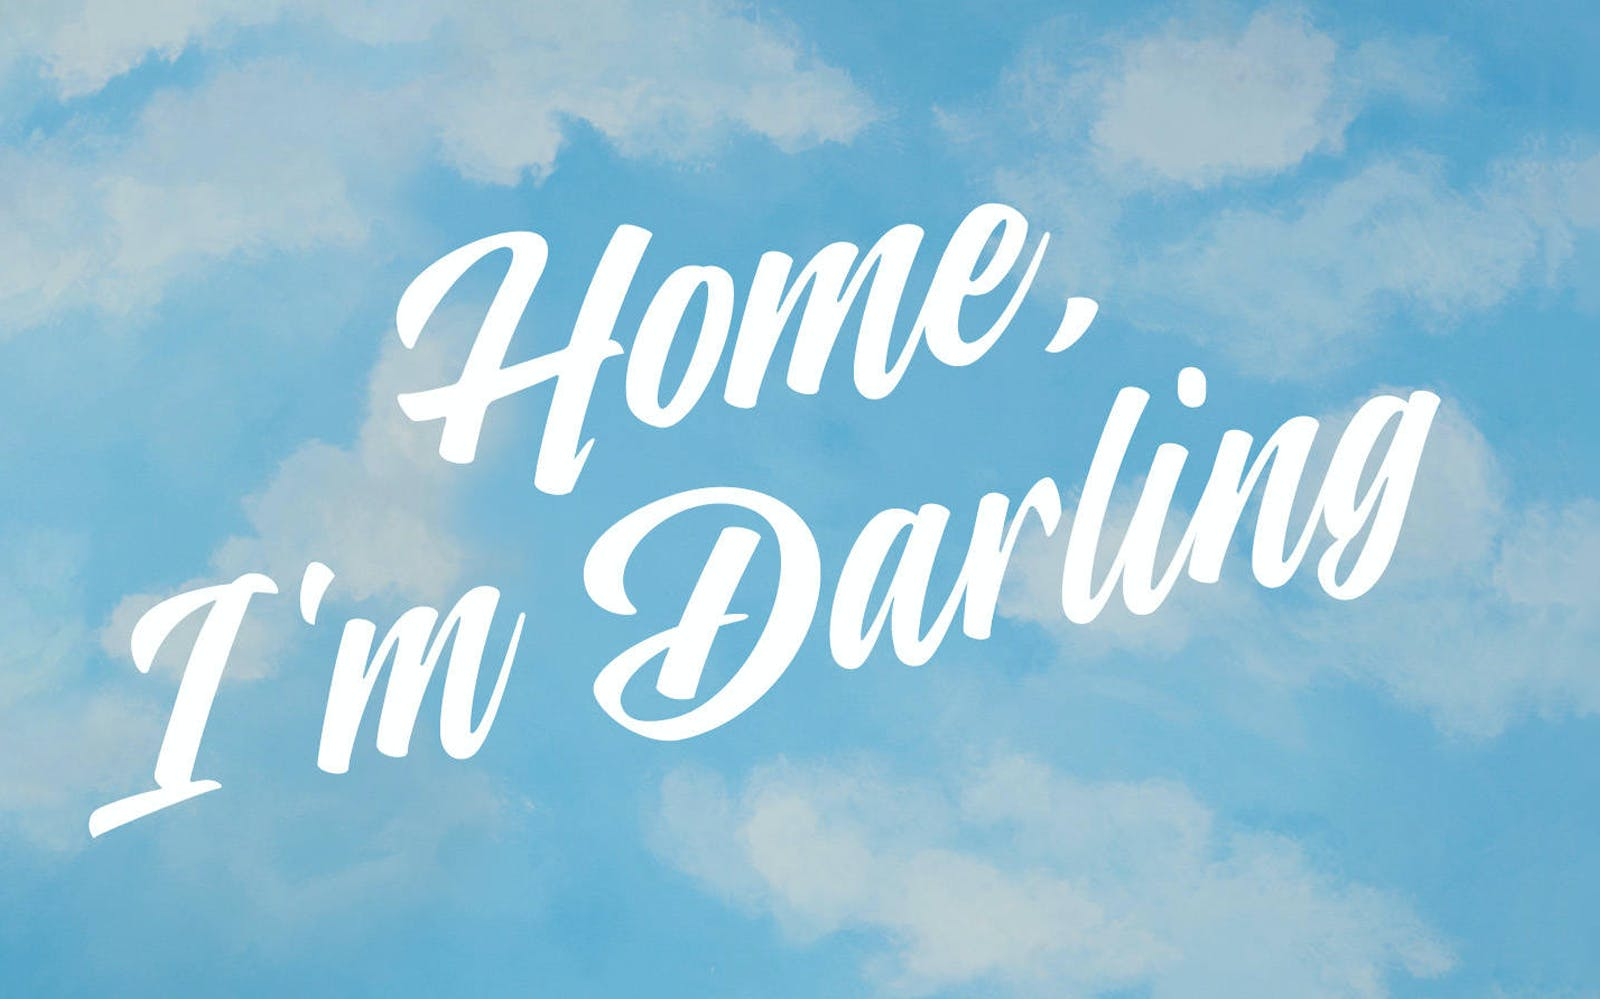 home, i'm darling-1